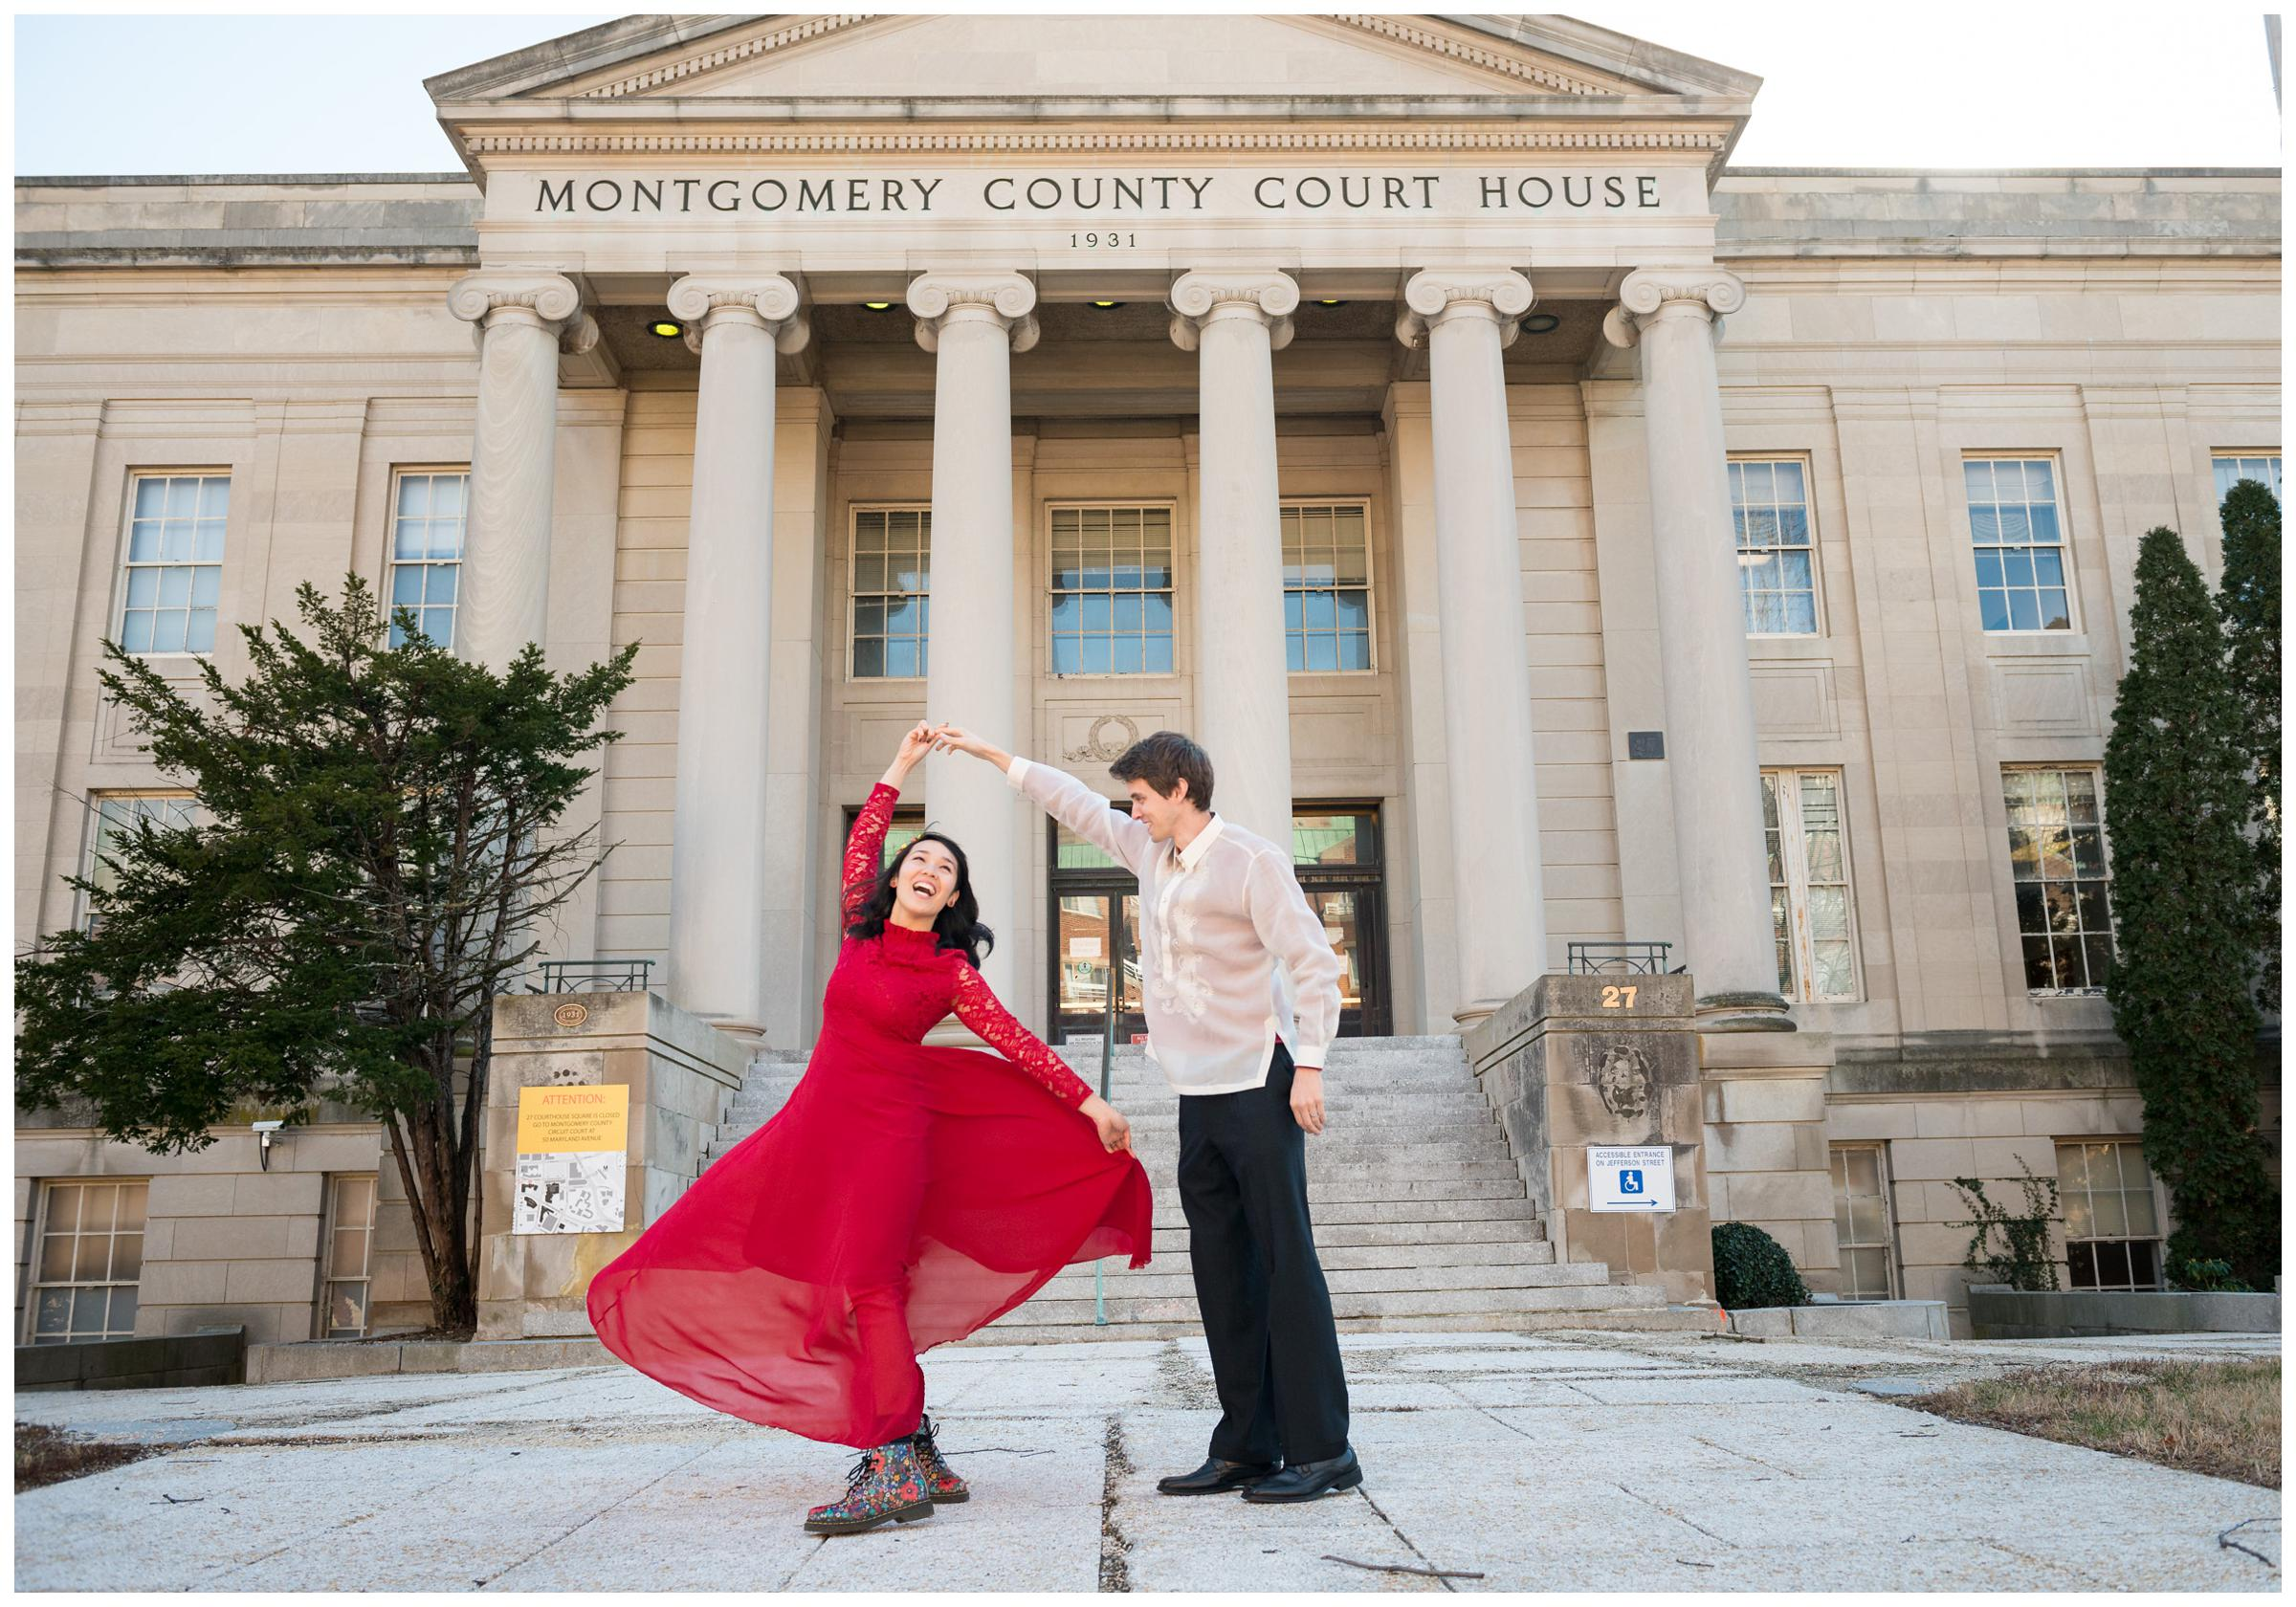 groom twirling bride in red dress outside of Montgomery County Courthouse after wedding